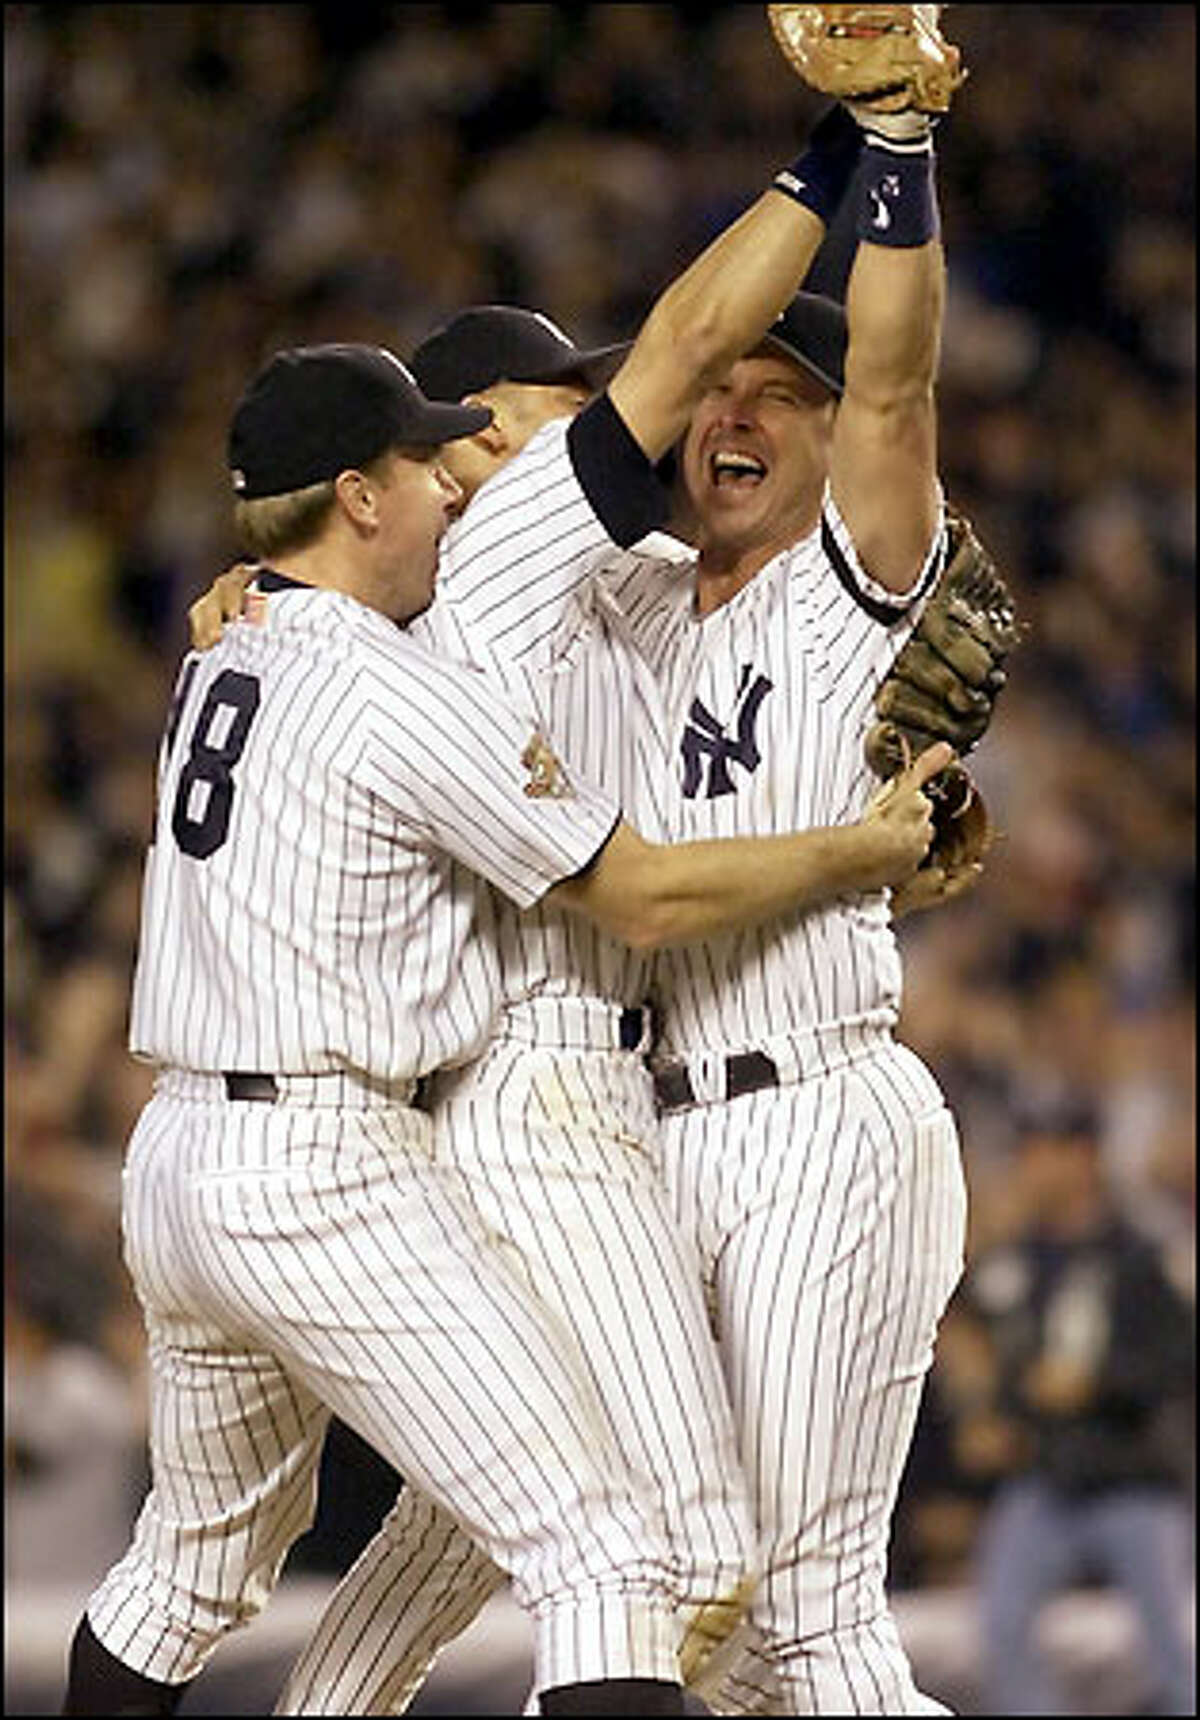 In an all-too-familiar scene for Mariners fans, Yankees players, from left, Scott Brosius, Derek Jeter and Tino Martinez celebrate a clinching victory over Seattle. The Yankees have stopped Seattle one series short of the World Series the past two seasons.